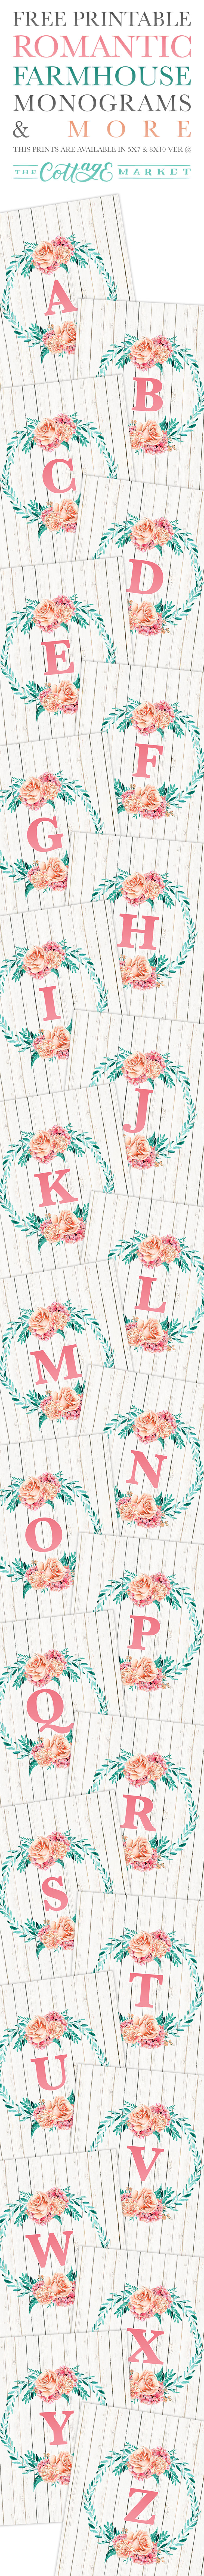 http://thecottagemarket.com/wp-content/uploads/2017/09/TCM-Romantic-Farmhouse-Monograms-Tower-1.jpg